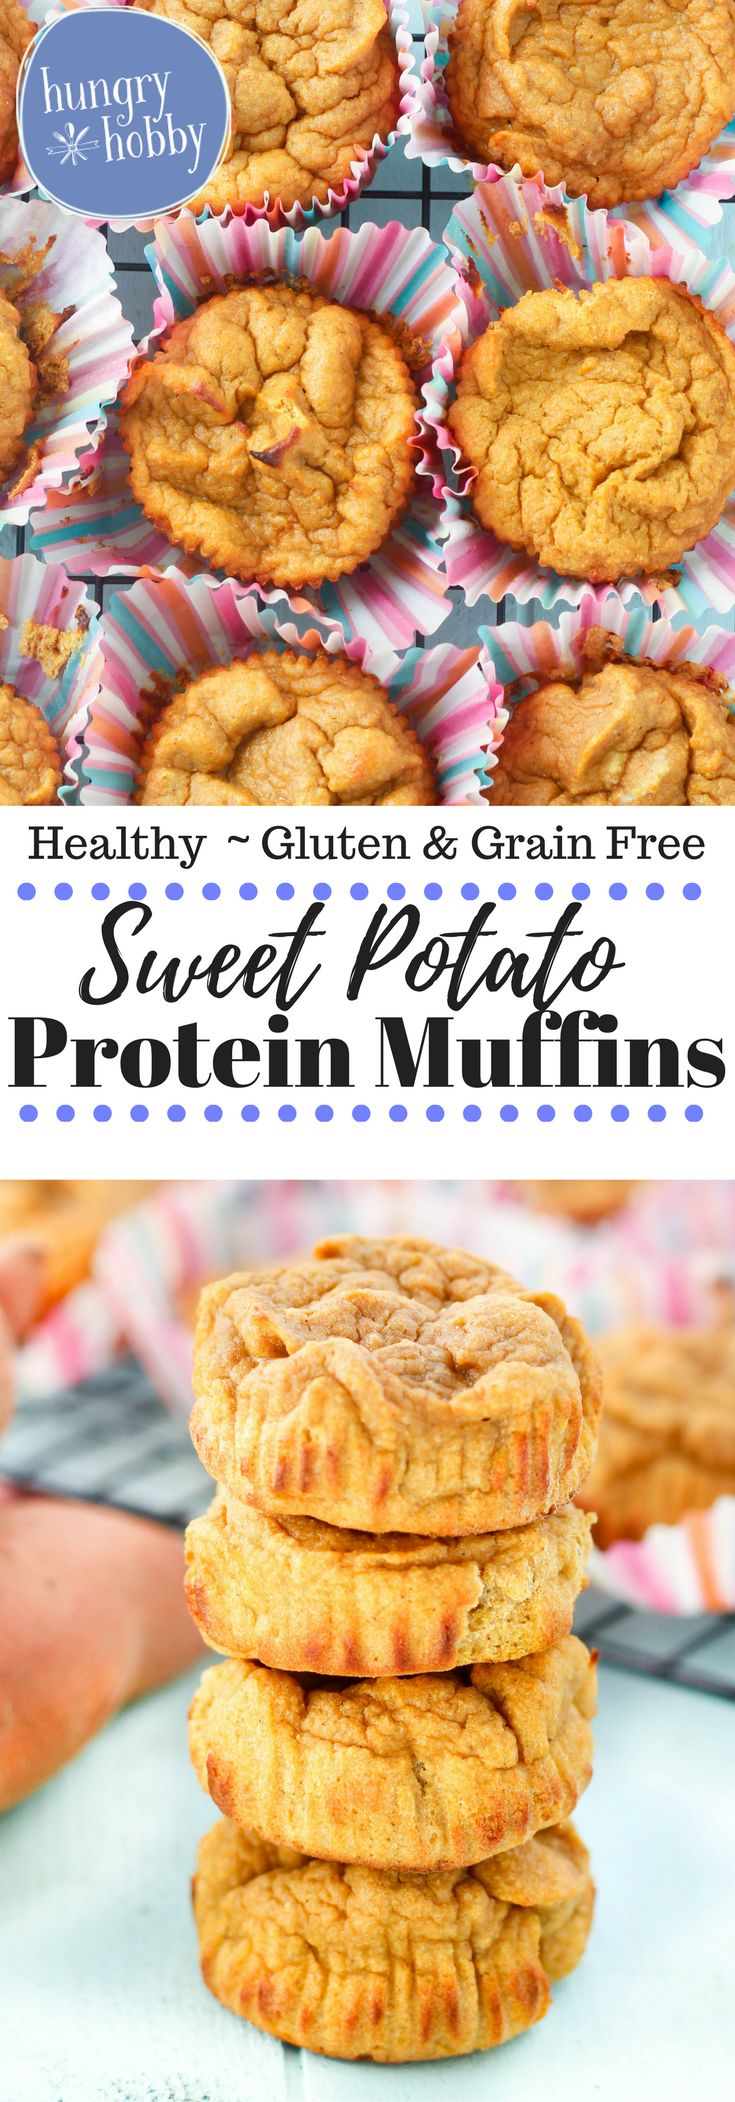 Sweet Potato Protein Muffins are a healthy, sweet, and portable breakfast or snack to give you energy and keep you full! Gluten Free  via @hungryhobby